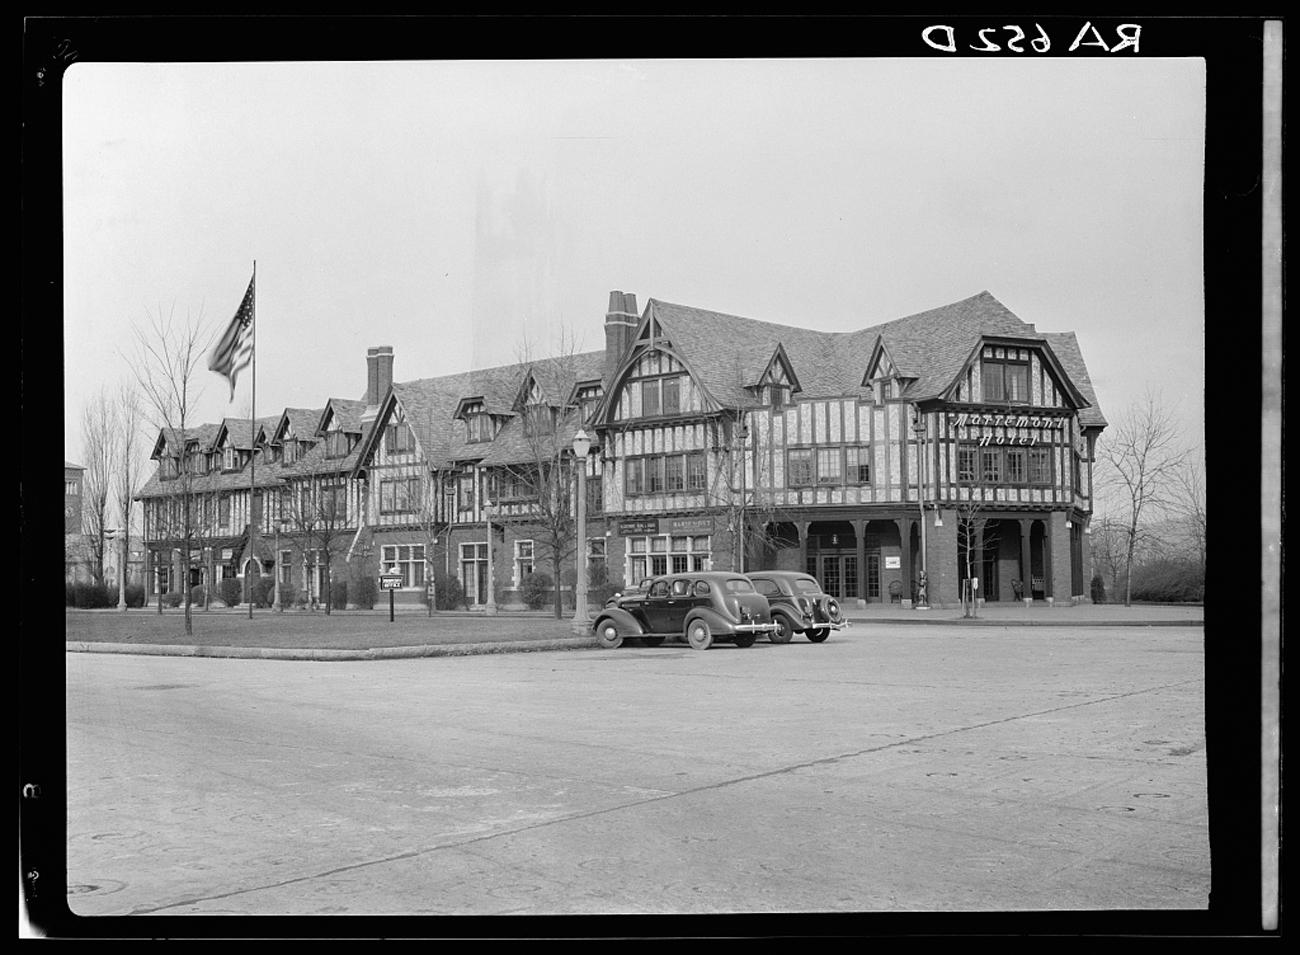 """Community commercial center which includes Mariemont Hotel of the Mariemont Housing Community outside Cincinnati, Ohio"" taken in December 1935 / Image: Carl Mydans for the U.S. Farm Security Administration/Office of War Information accessed via the Library of Congress // Published: 3.4.19"